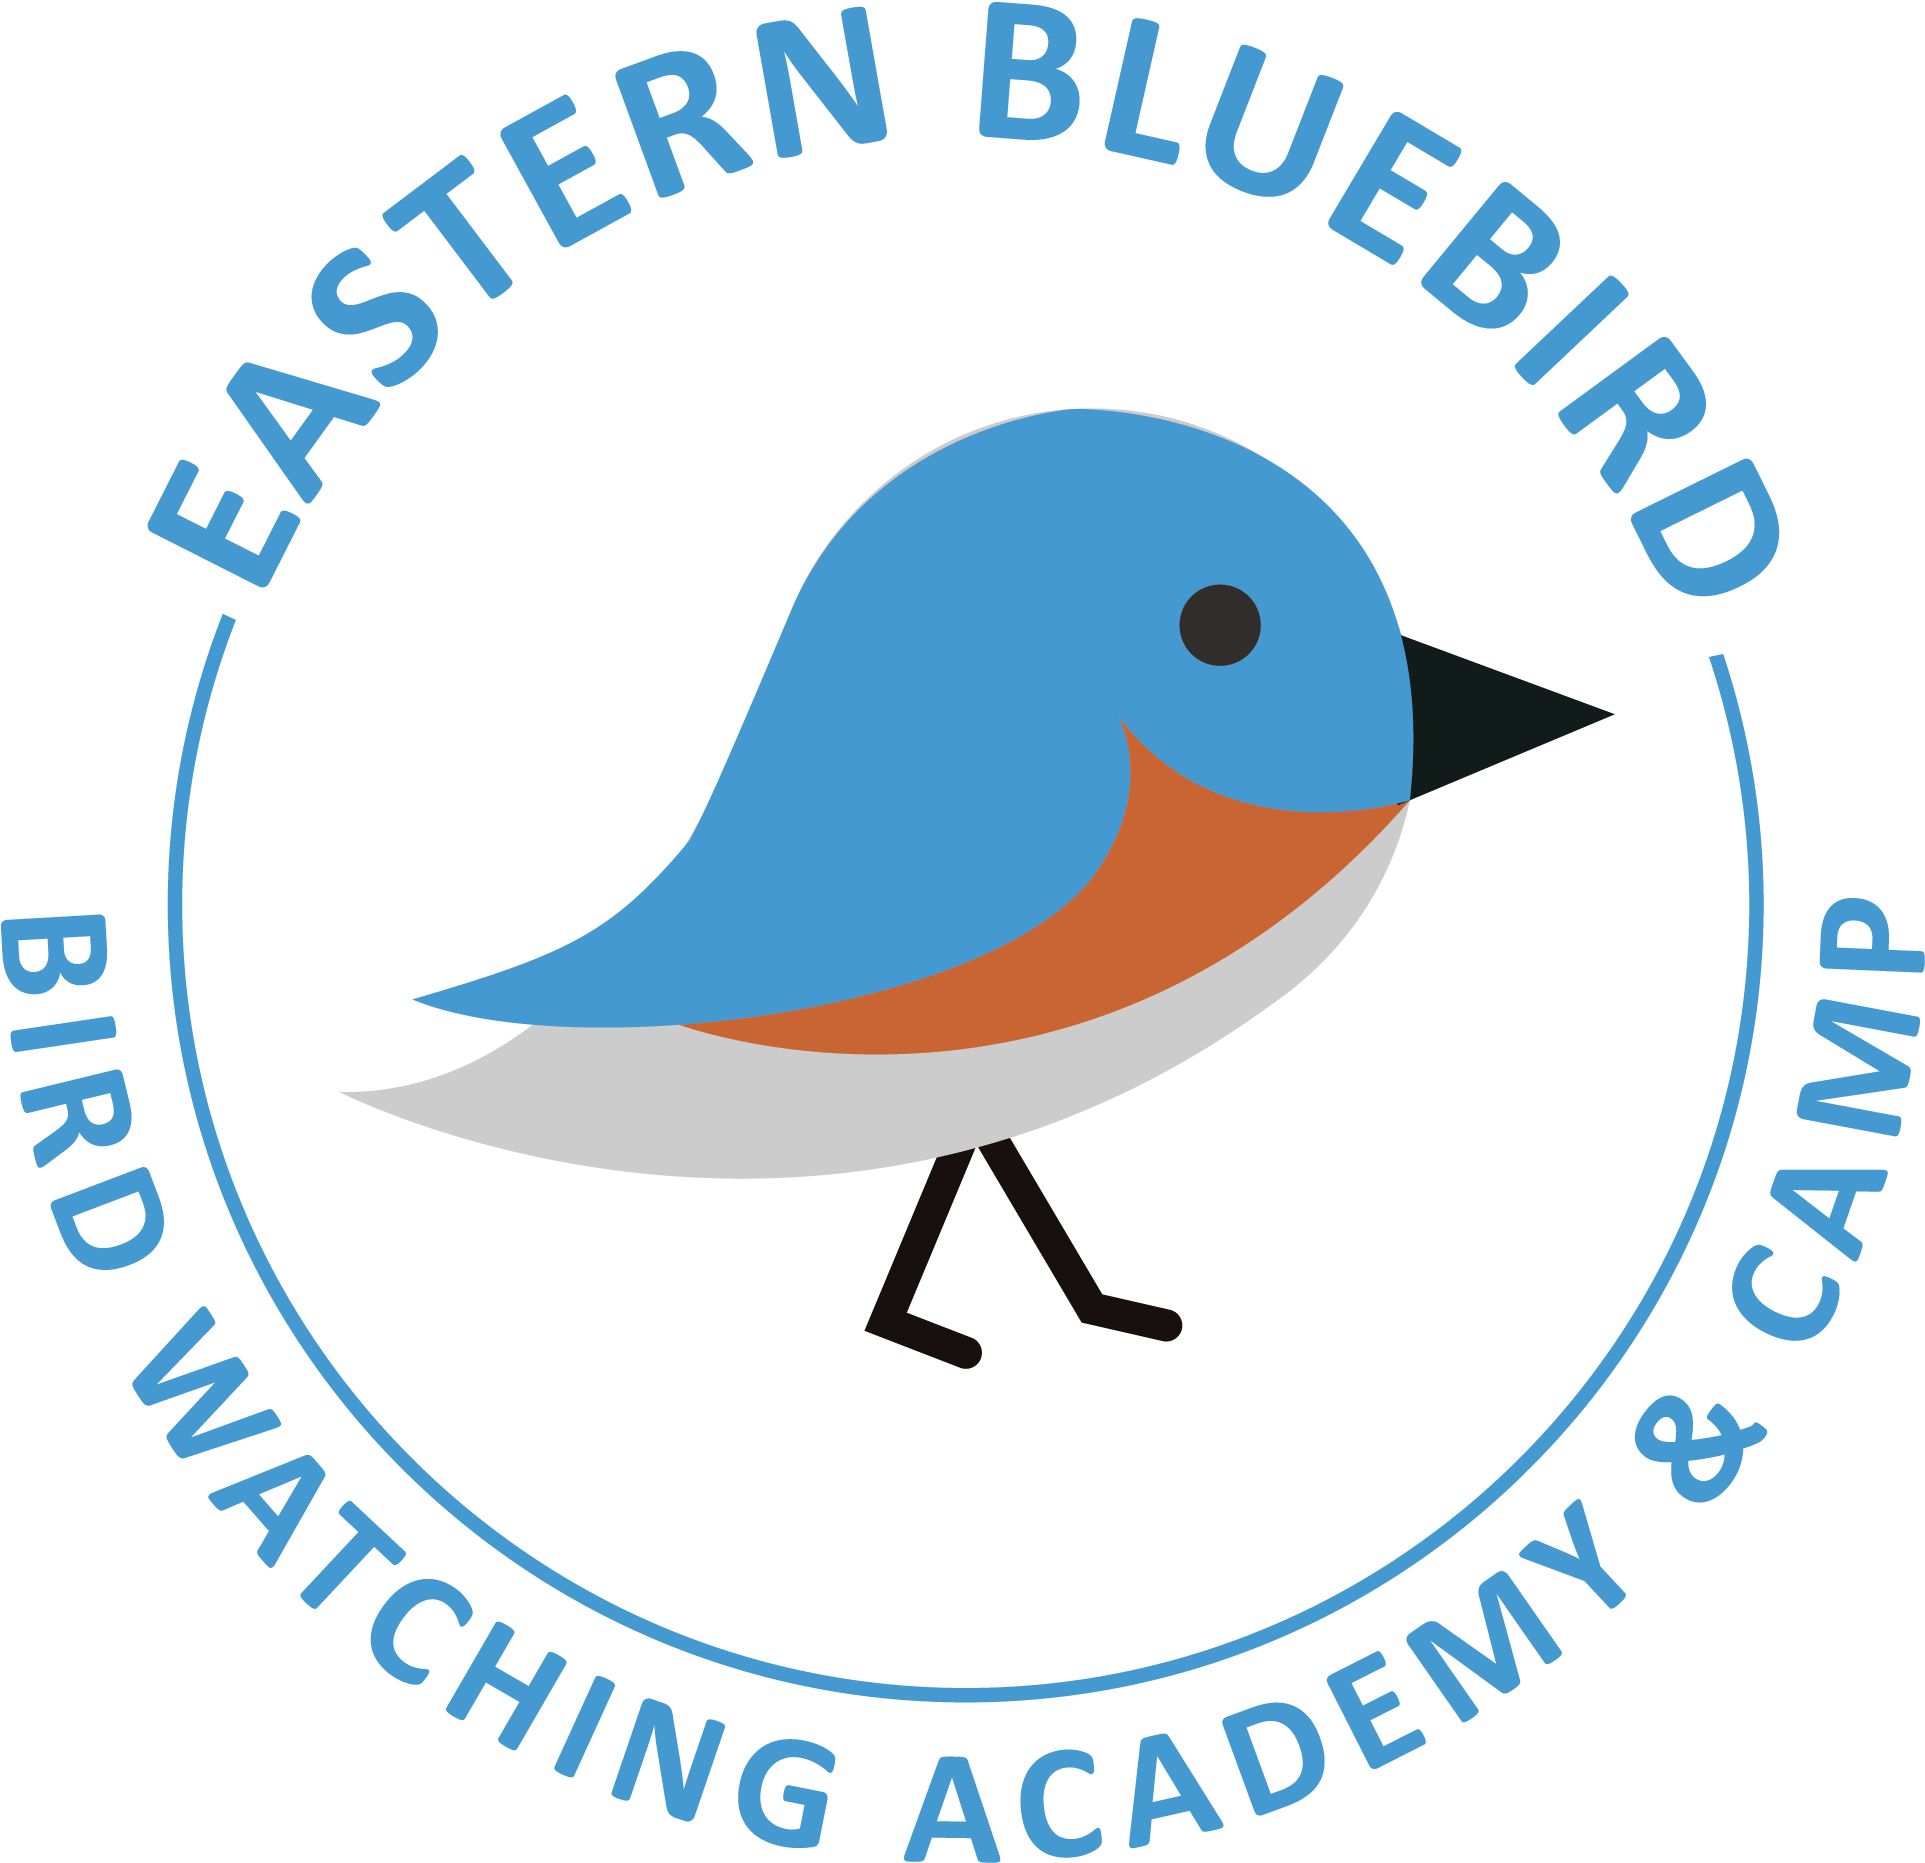 Eastern bluebird. Mountain download clipart on